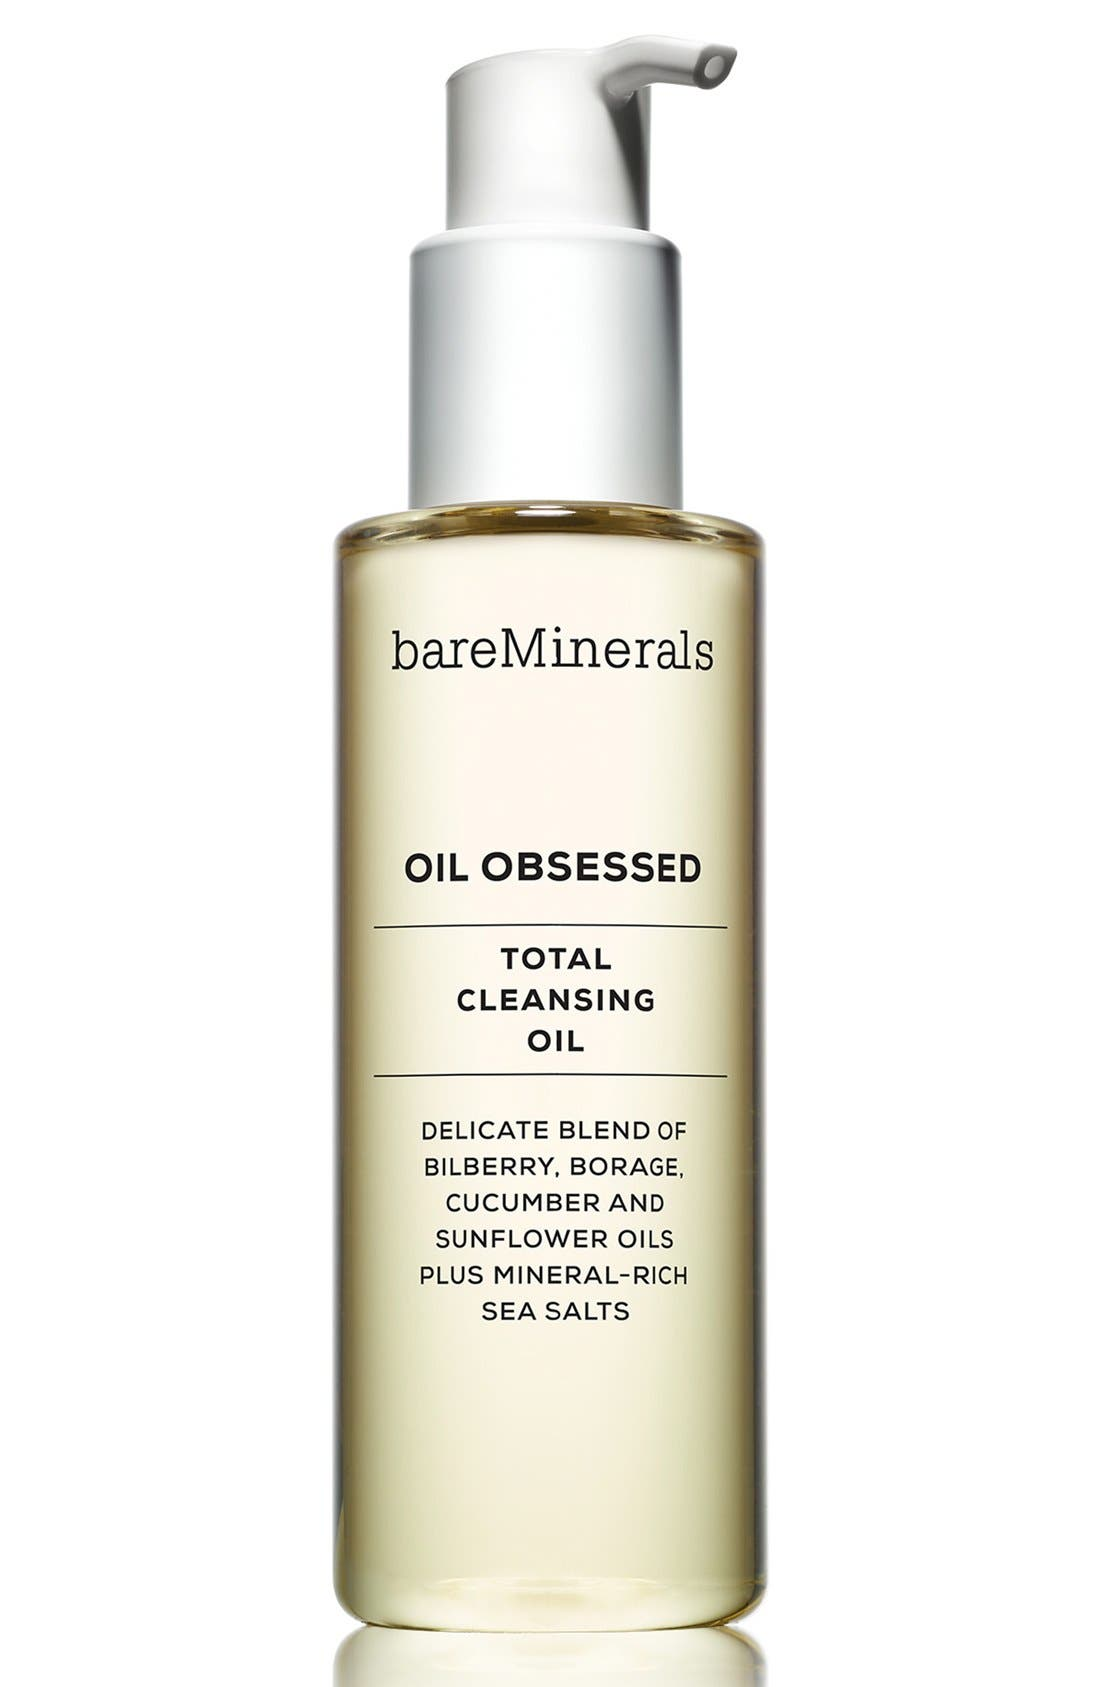 bareMinerals® 'Oil Obsessed' Total Cleansing Oil